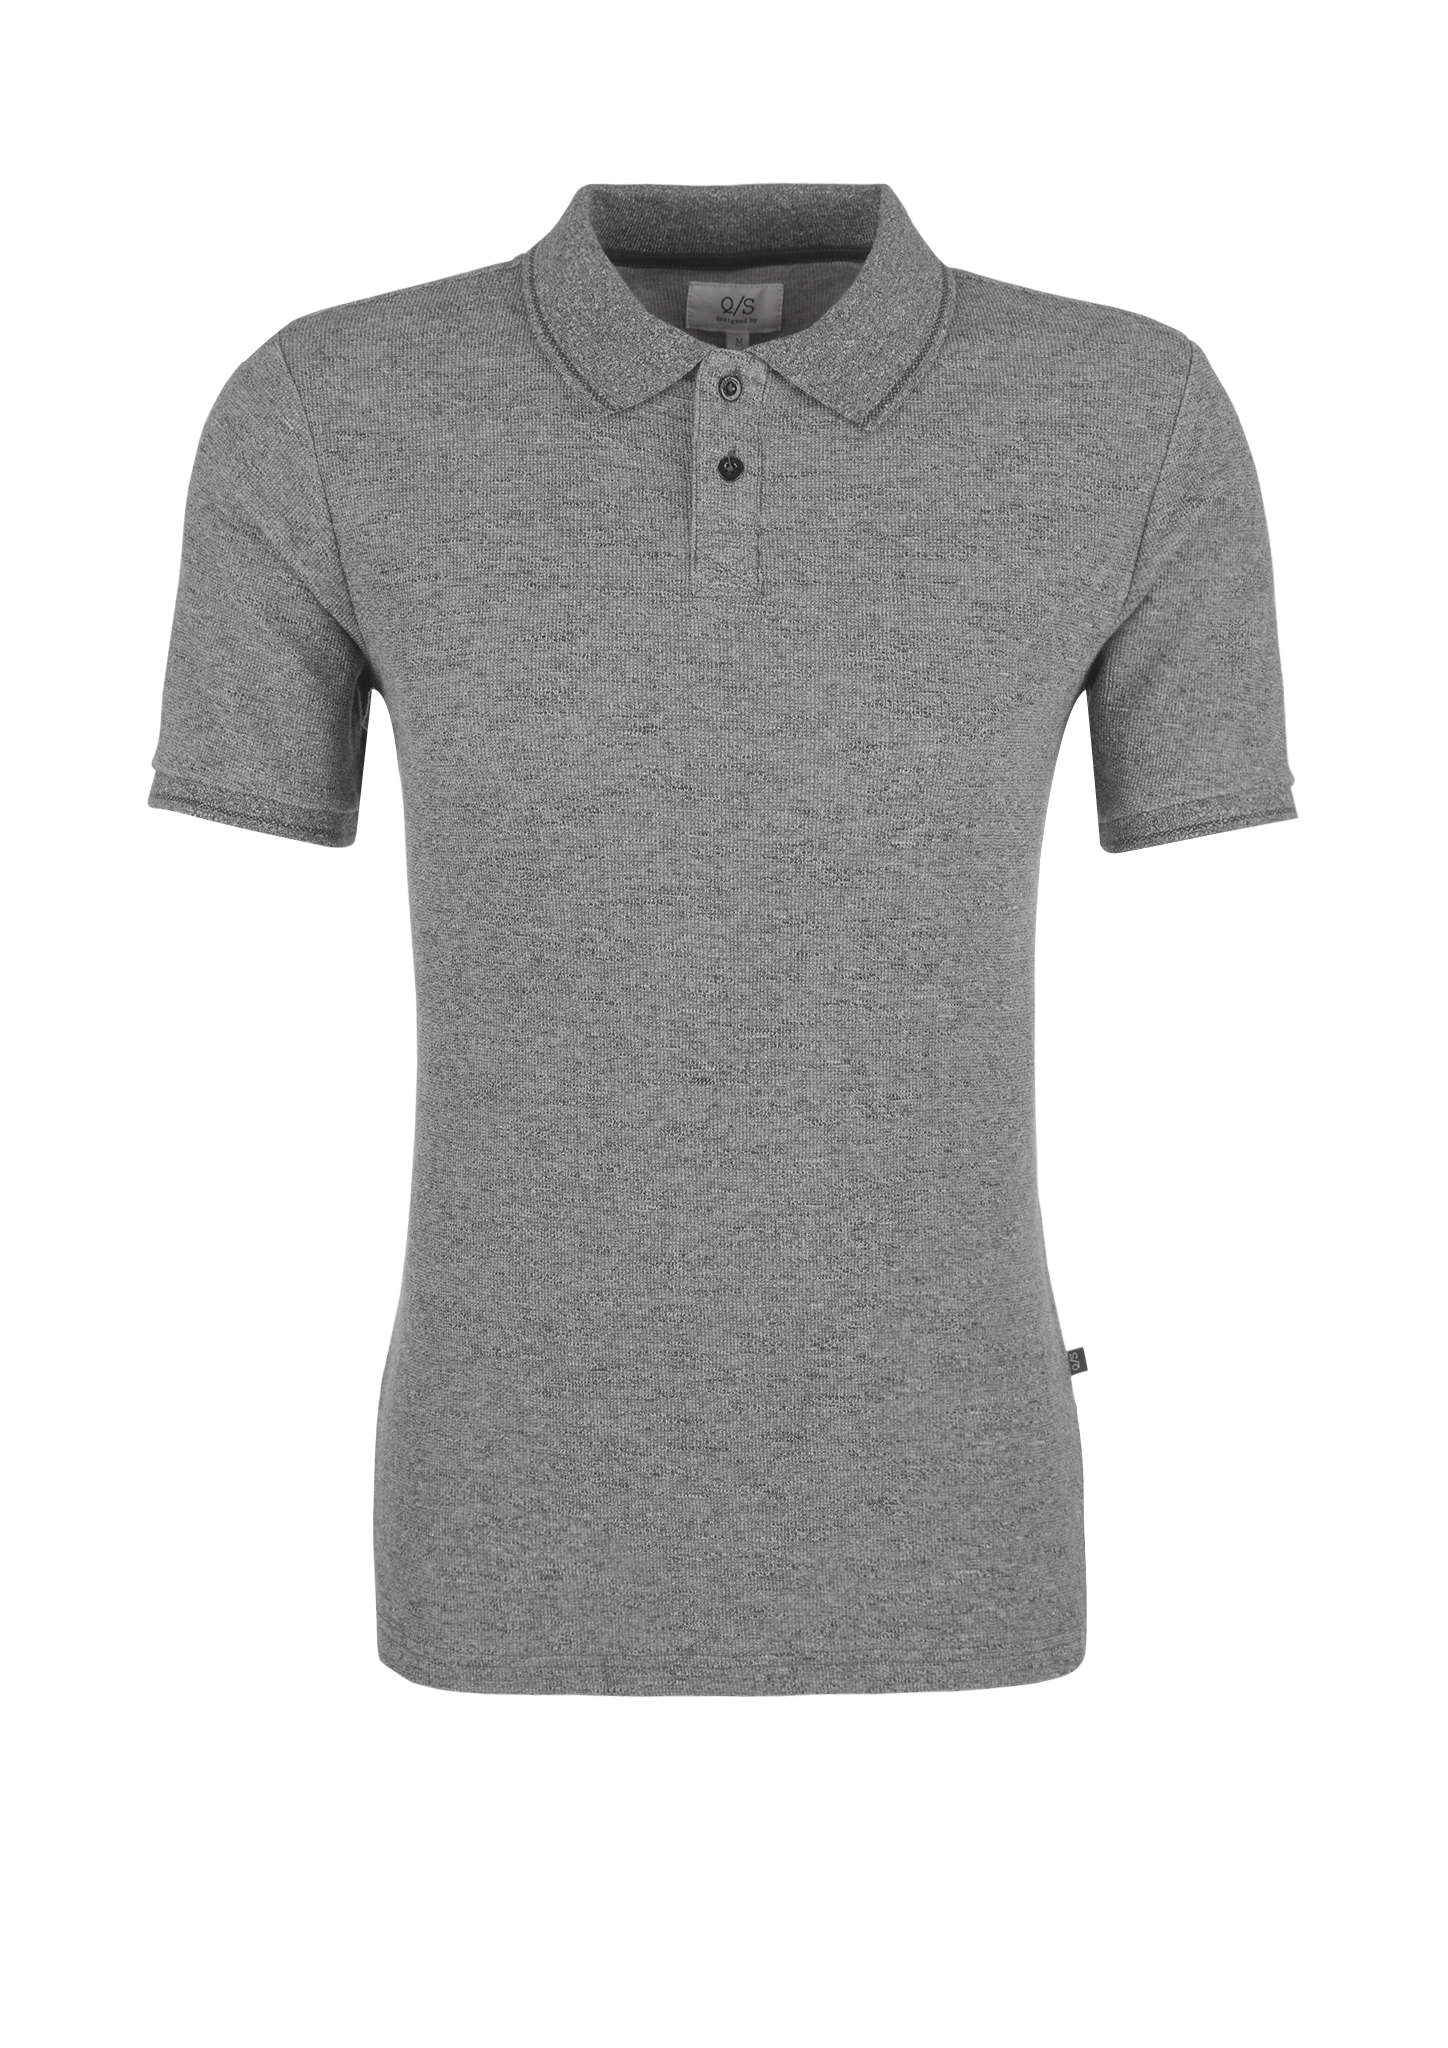 Poloshirt | Bekleidung > Polo Shirts | Grau/schwarz | 80% baumwolle -  20% polyester | Q/S designed by